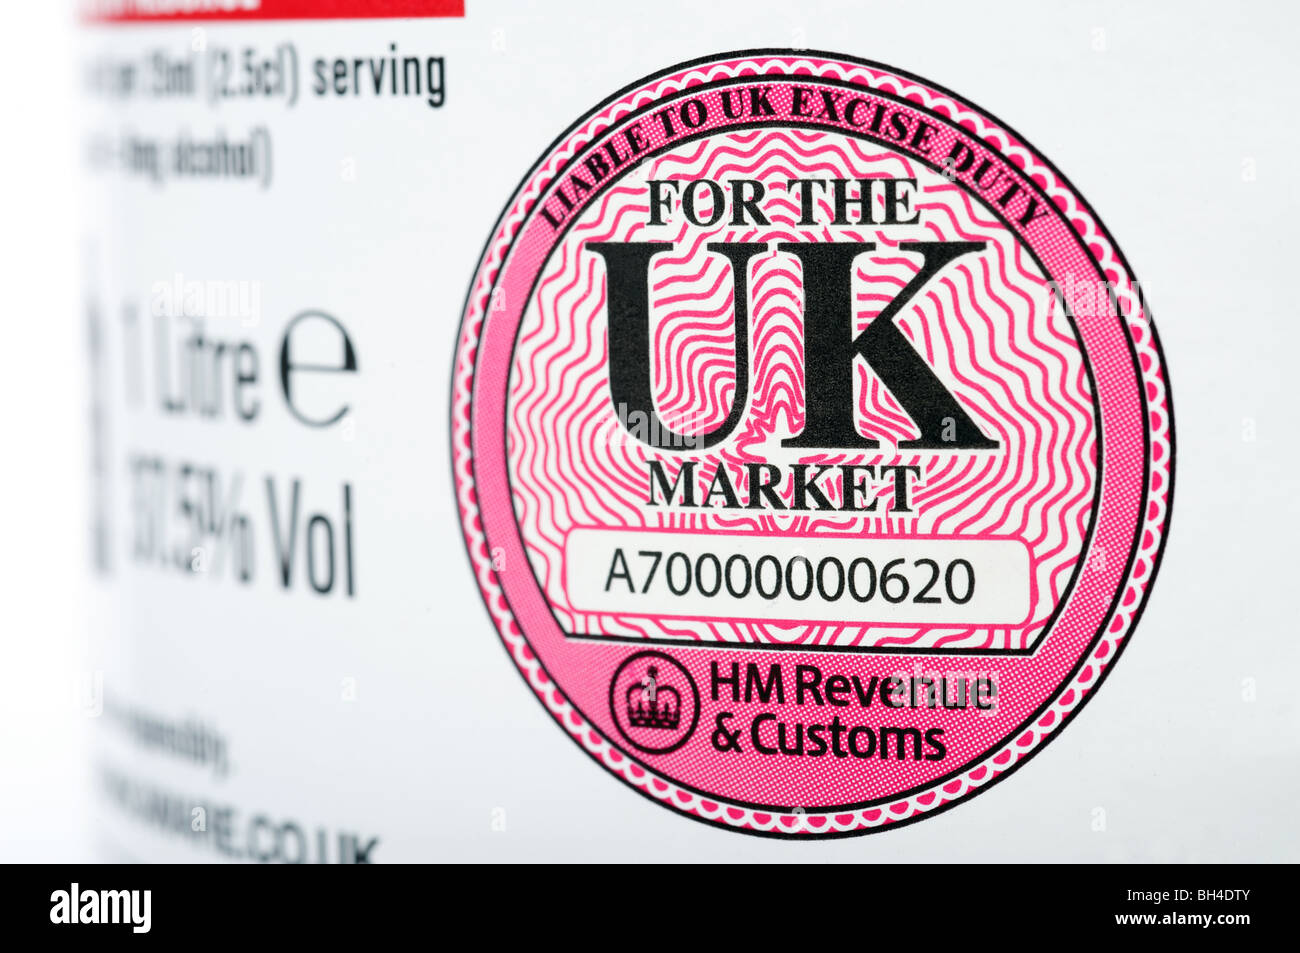 HM Revenue & Customs liable to UK excise duty label printed on a bottle of Vodka Stock Photo